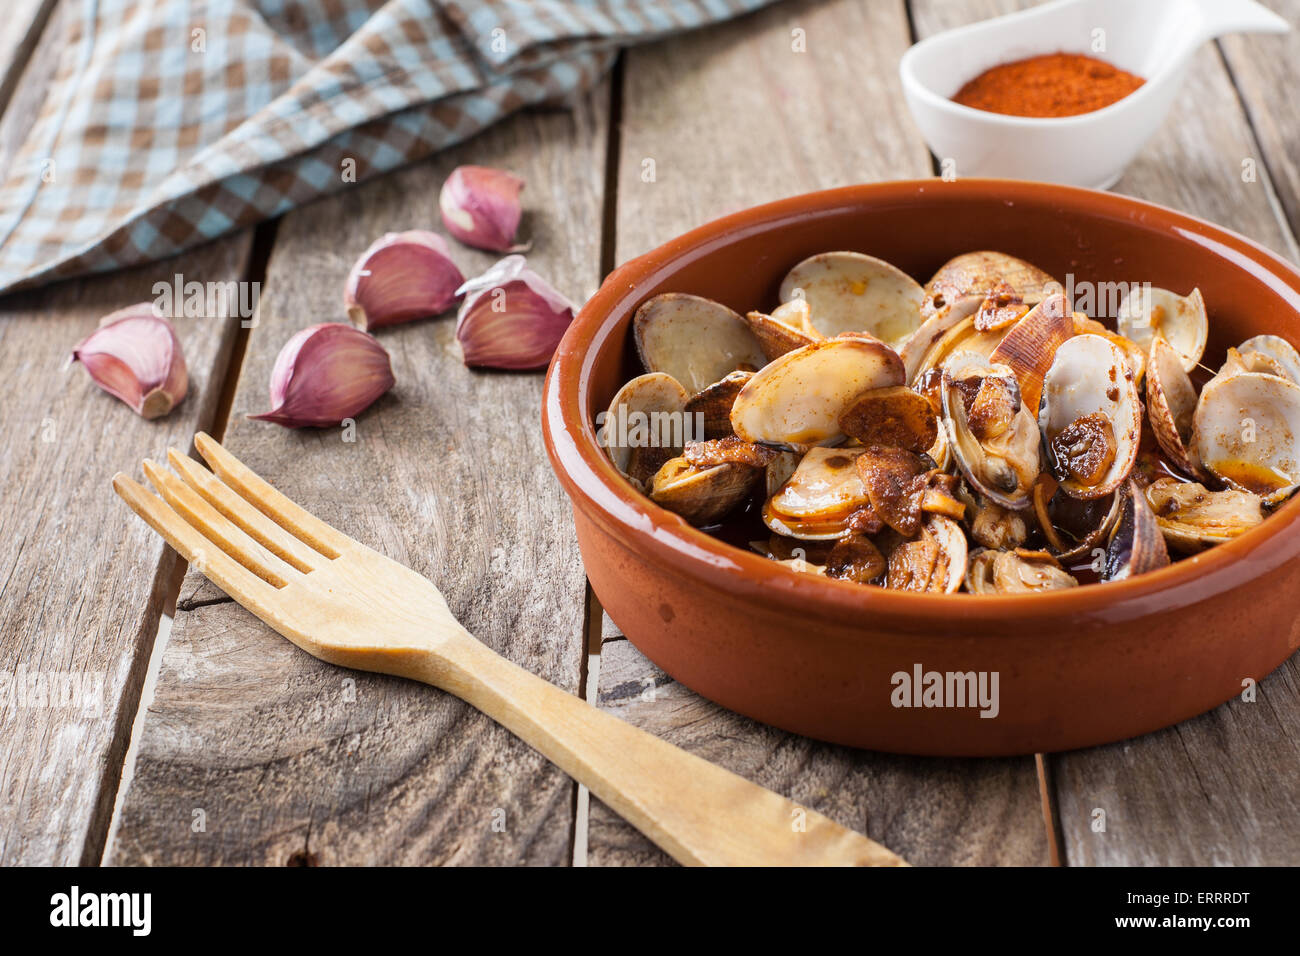 clams with garlic  at paprika spanish seafood style - Stock Image